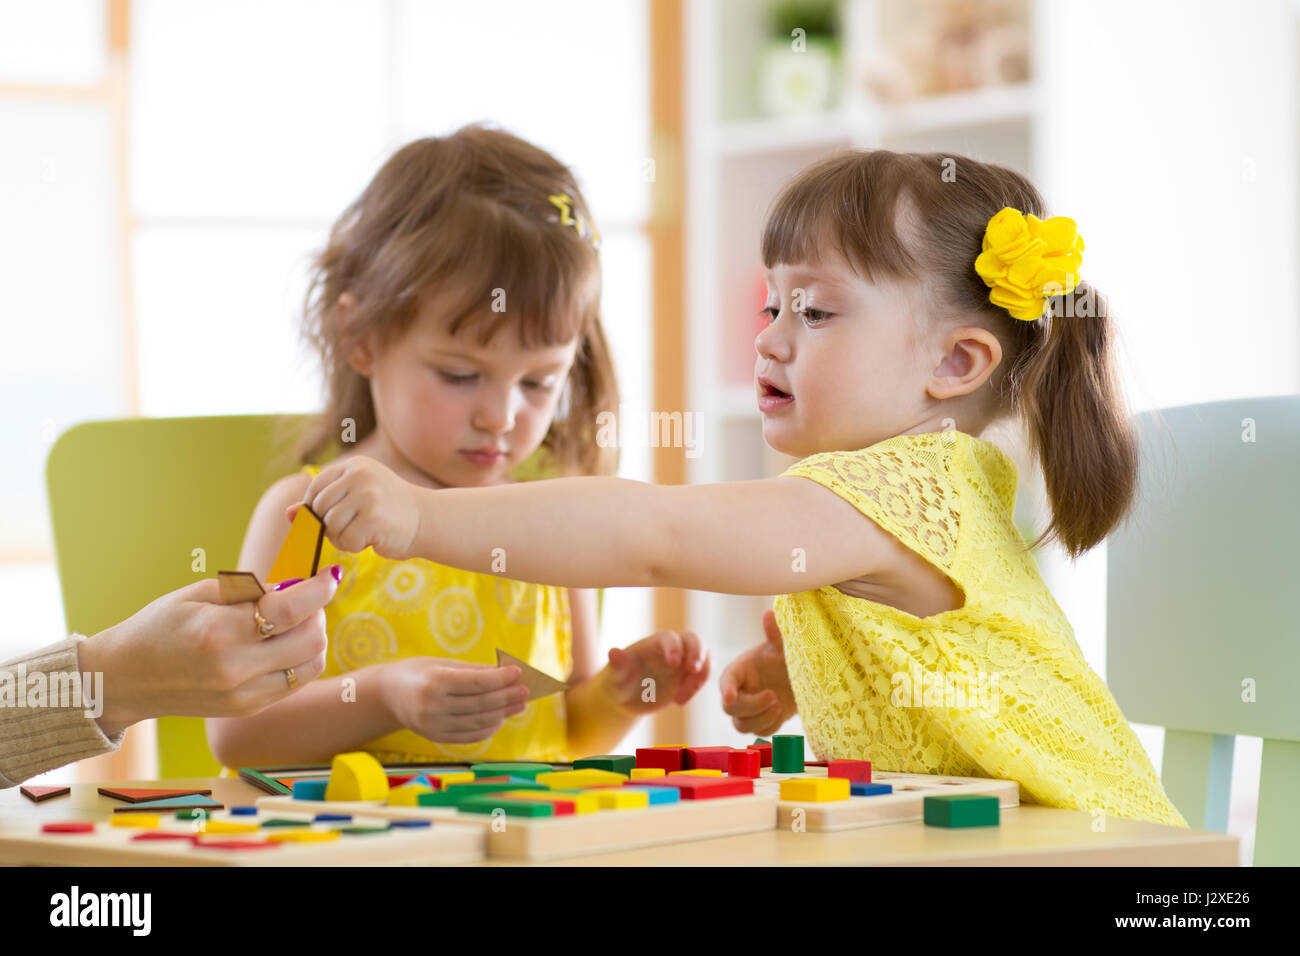 Preschool teacher and children playing with educational sorter toys in classroom - Stock Image